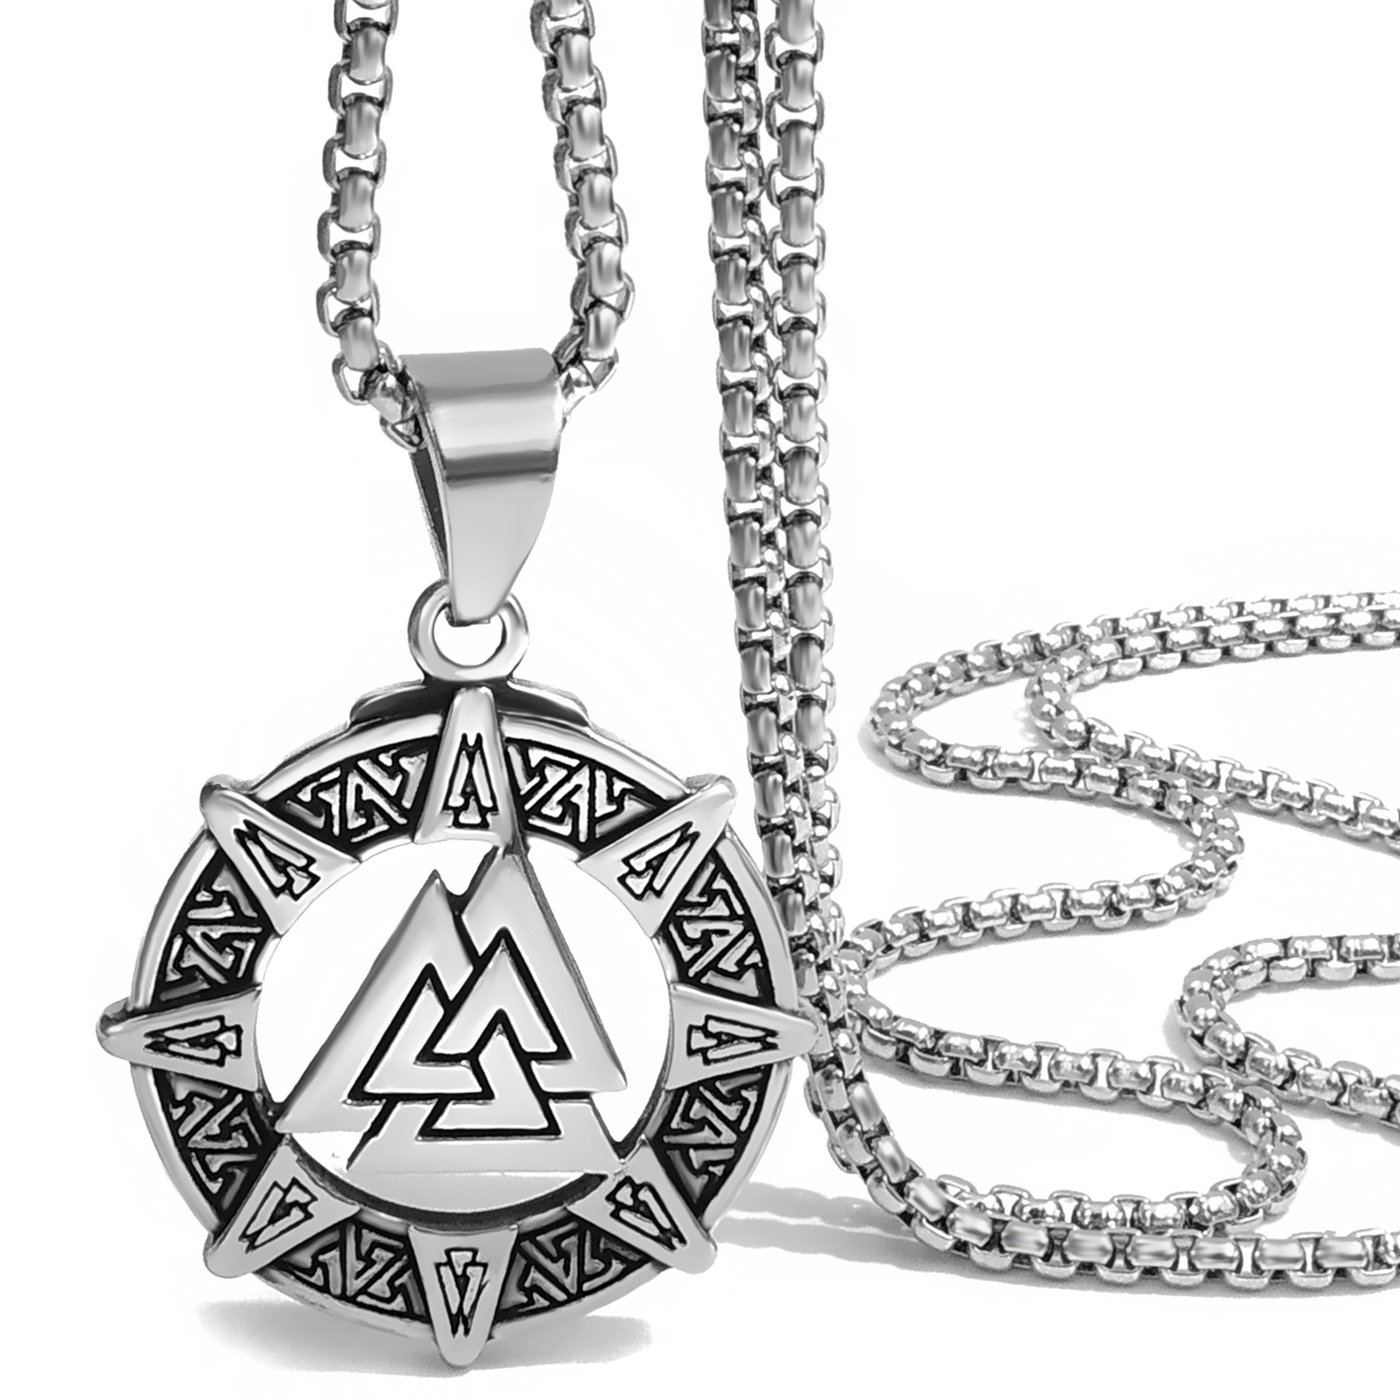 JEWLUXURY Jewelry Stainless Steel Celtic Knot Irish Triquetra Trinity Pendant Necklaces with Gift Box